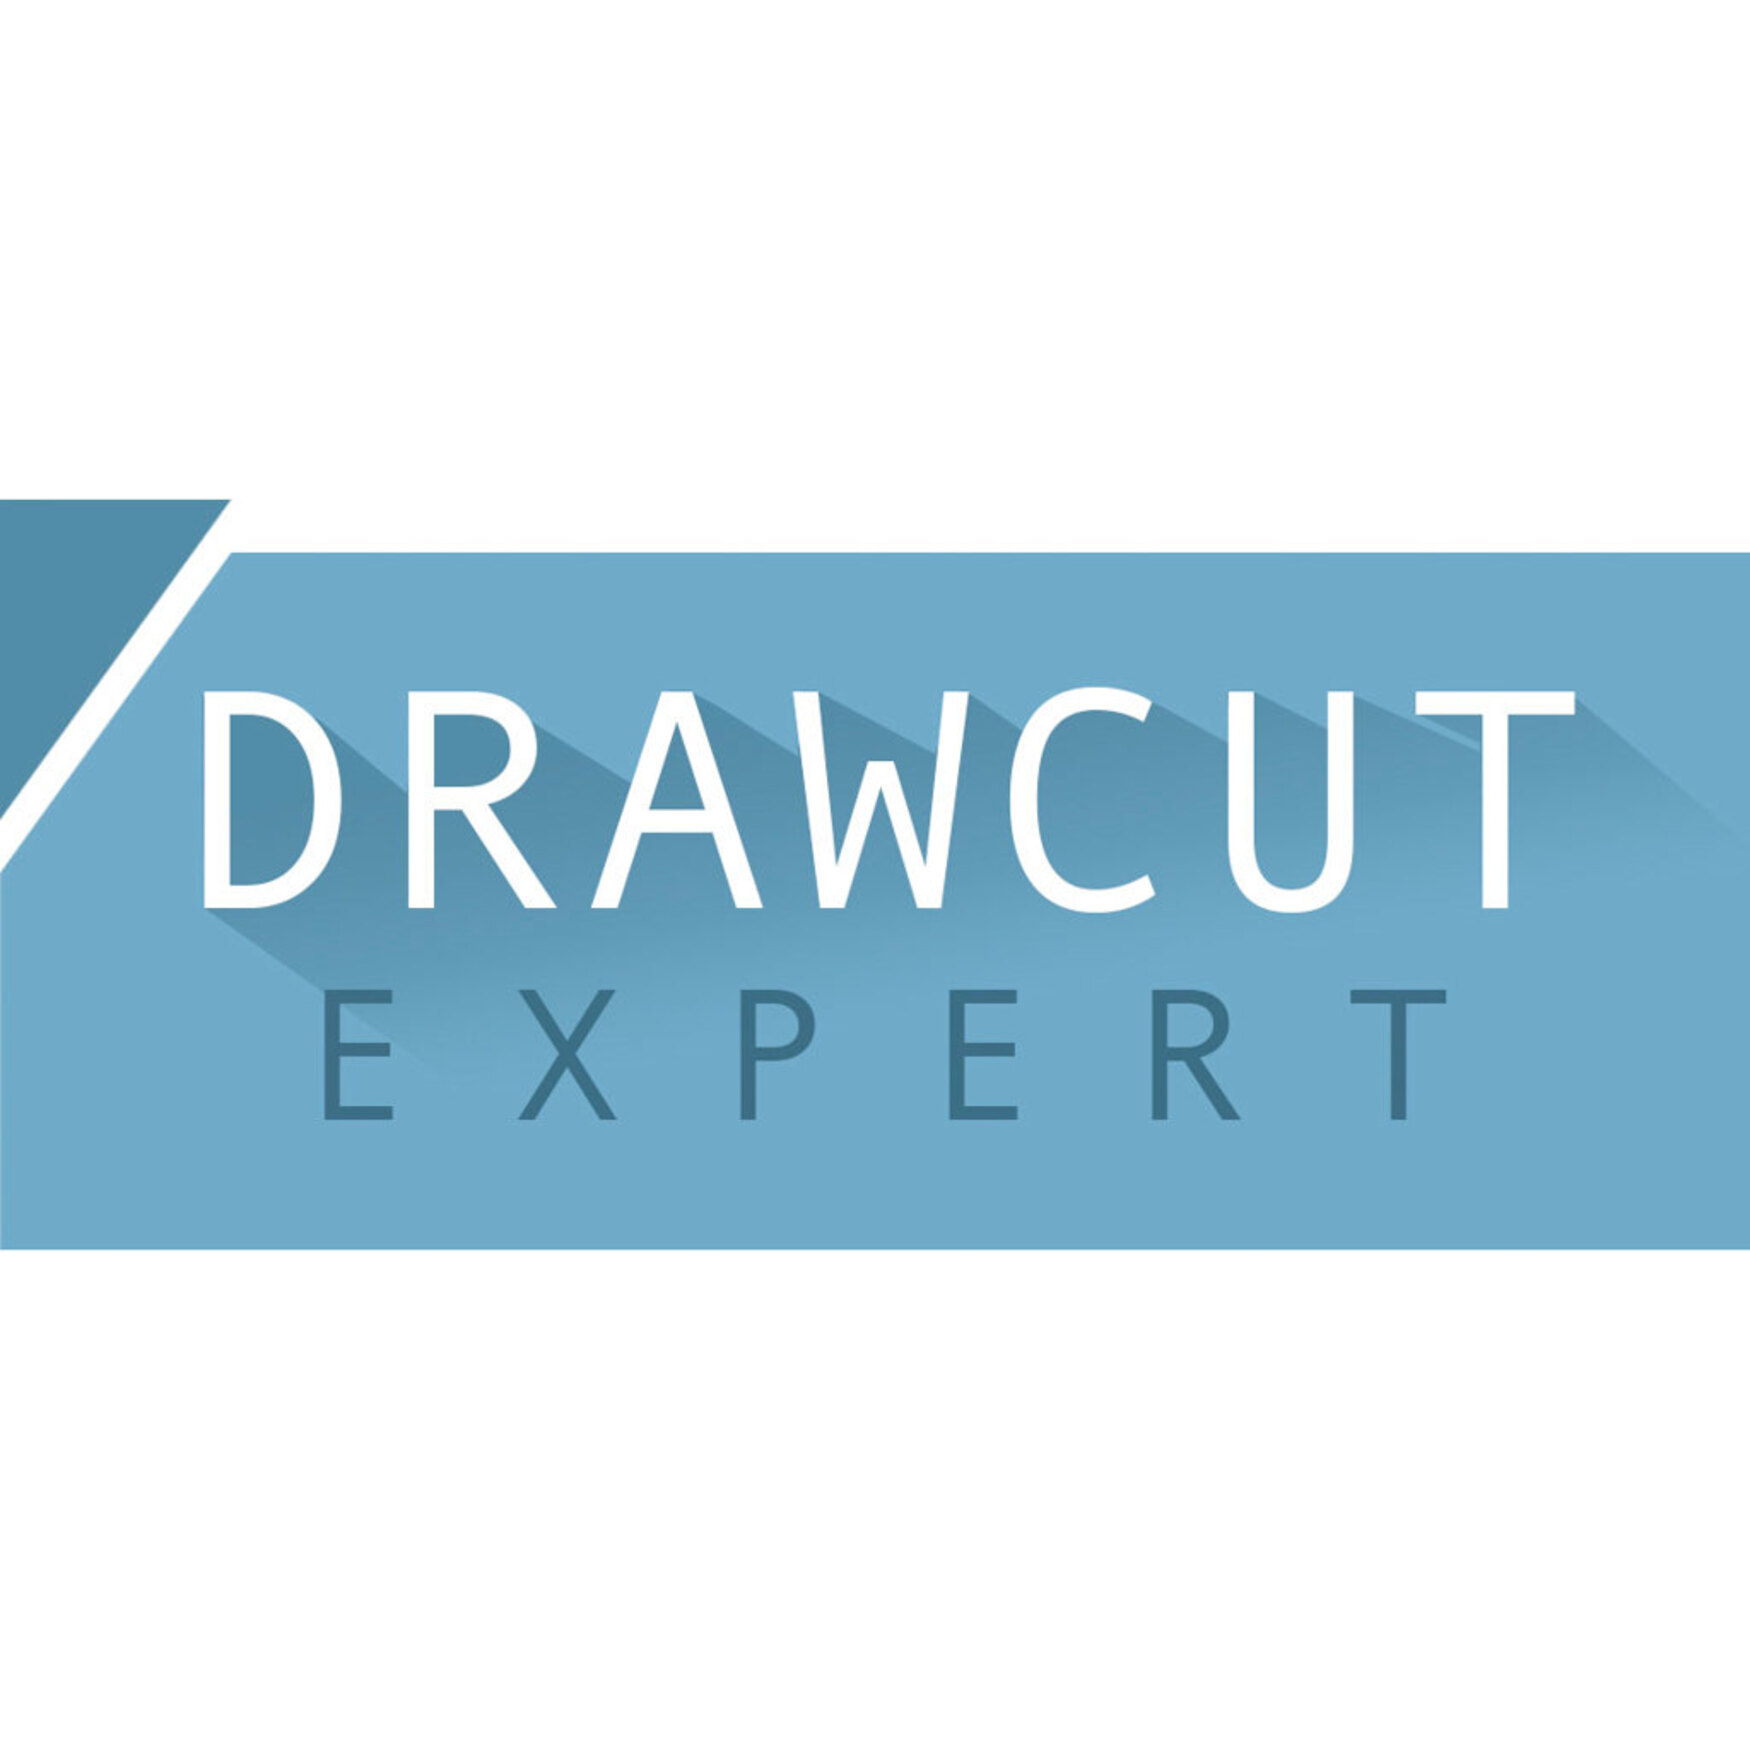 DrawCut EXPERT cutting software single license